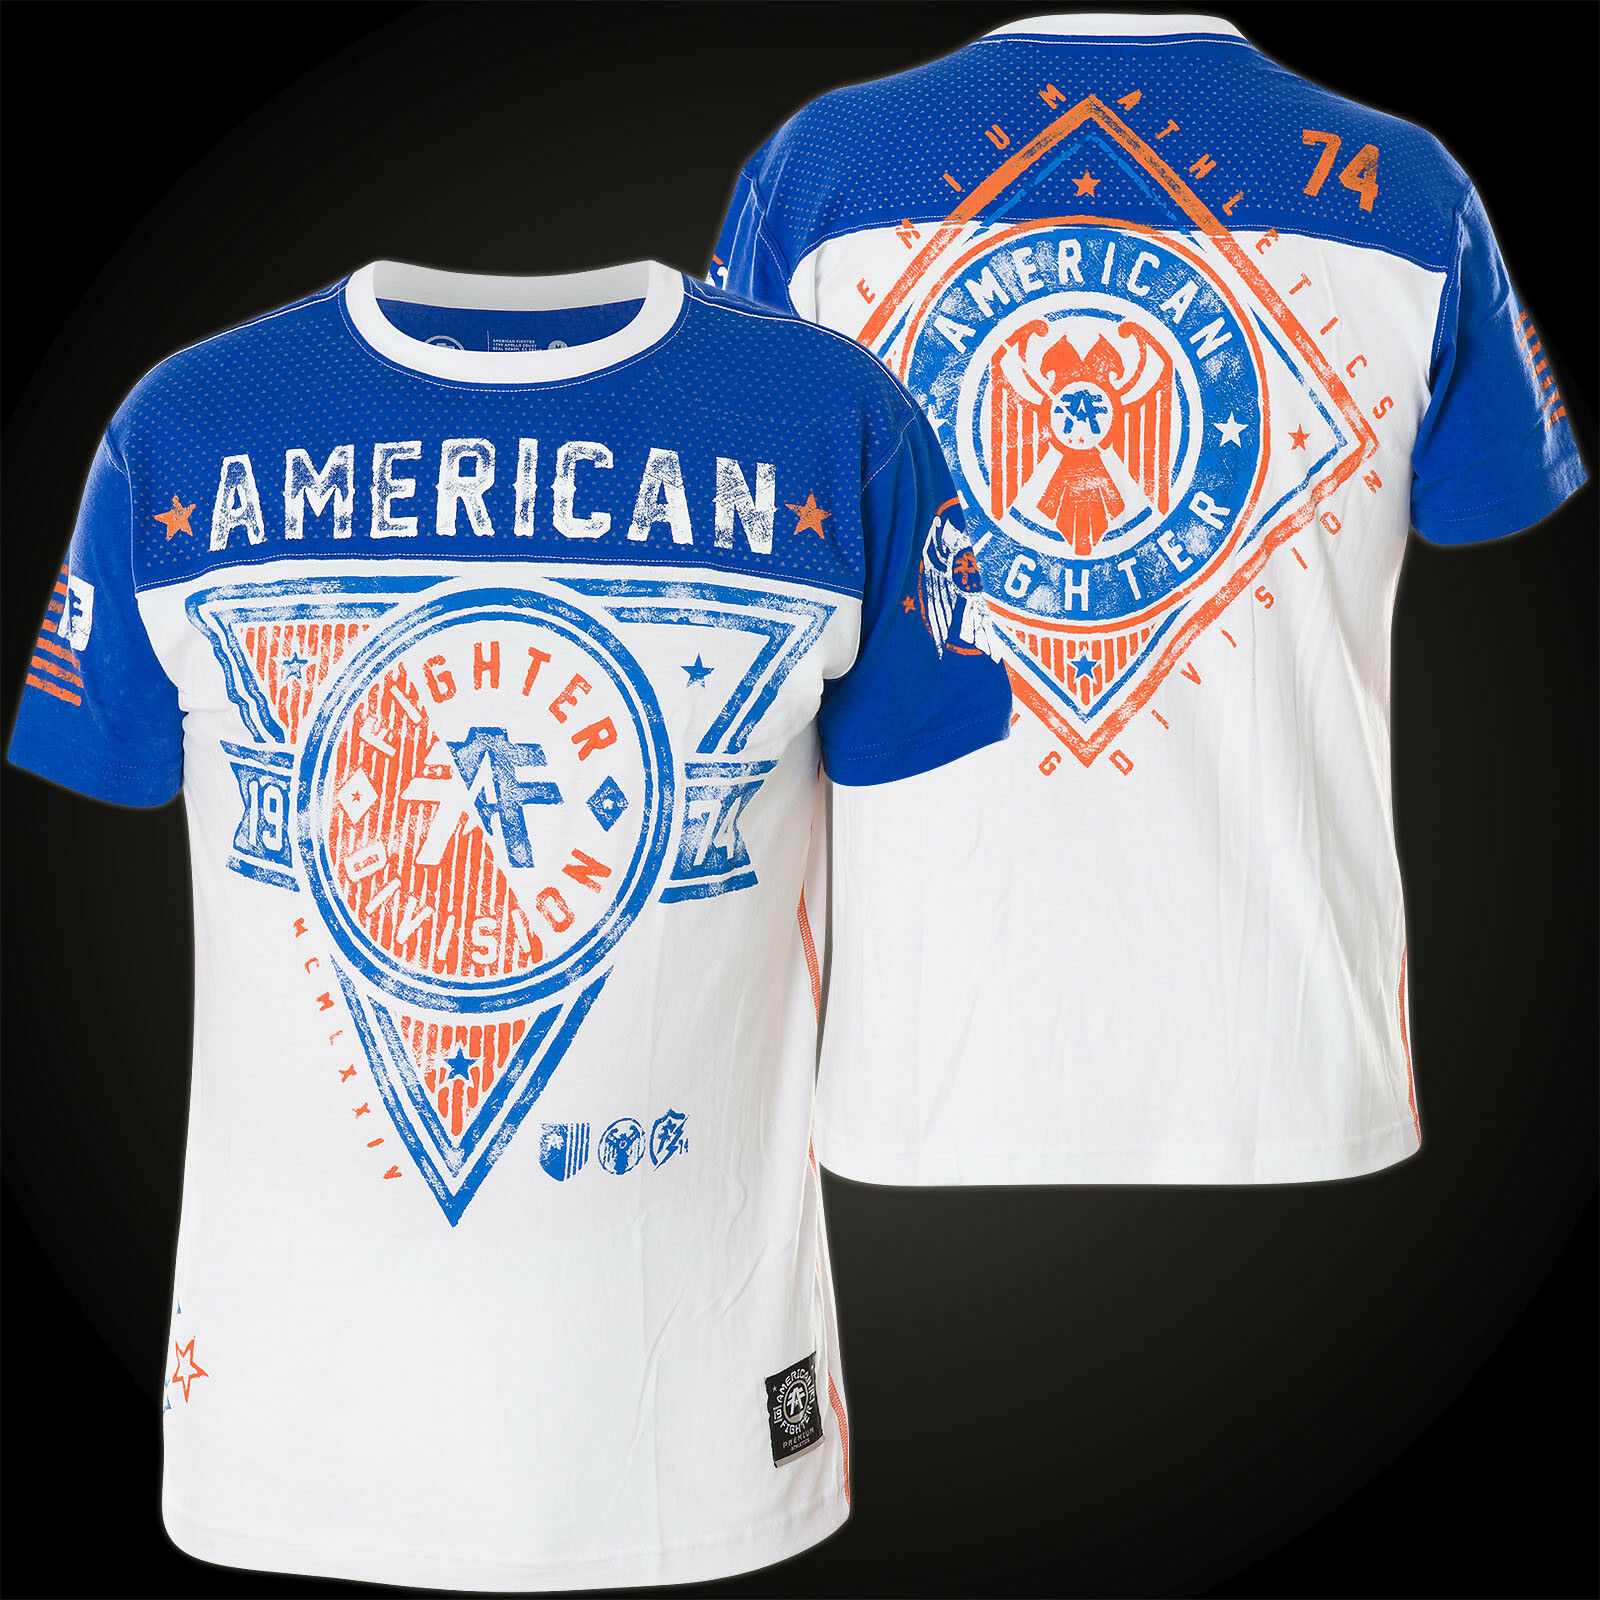 AMERICAN FIGHTER Affliction T-Shirt Siena Heights Artisans white blue